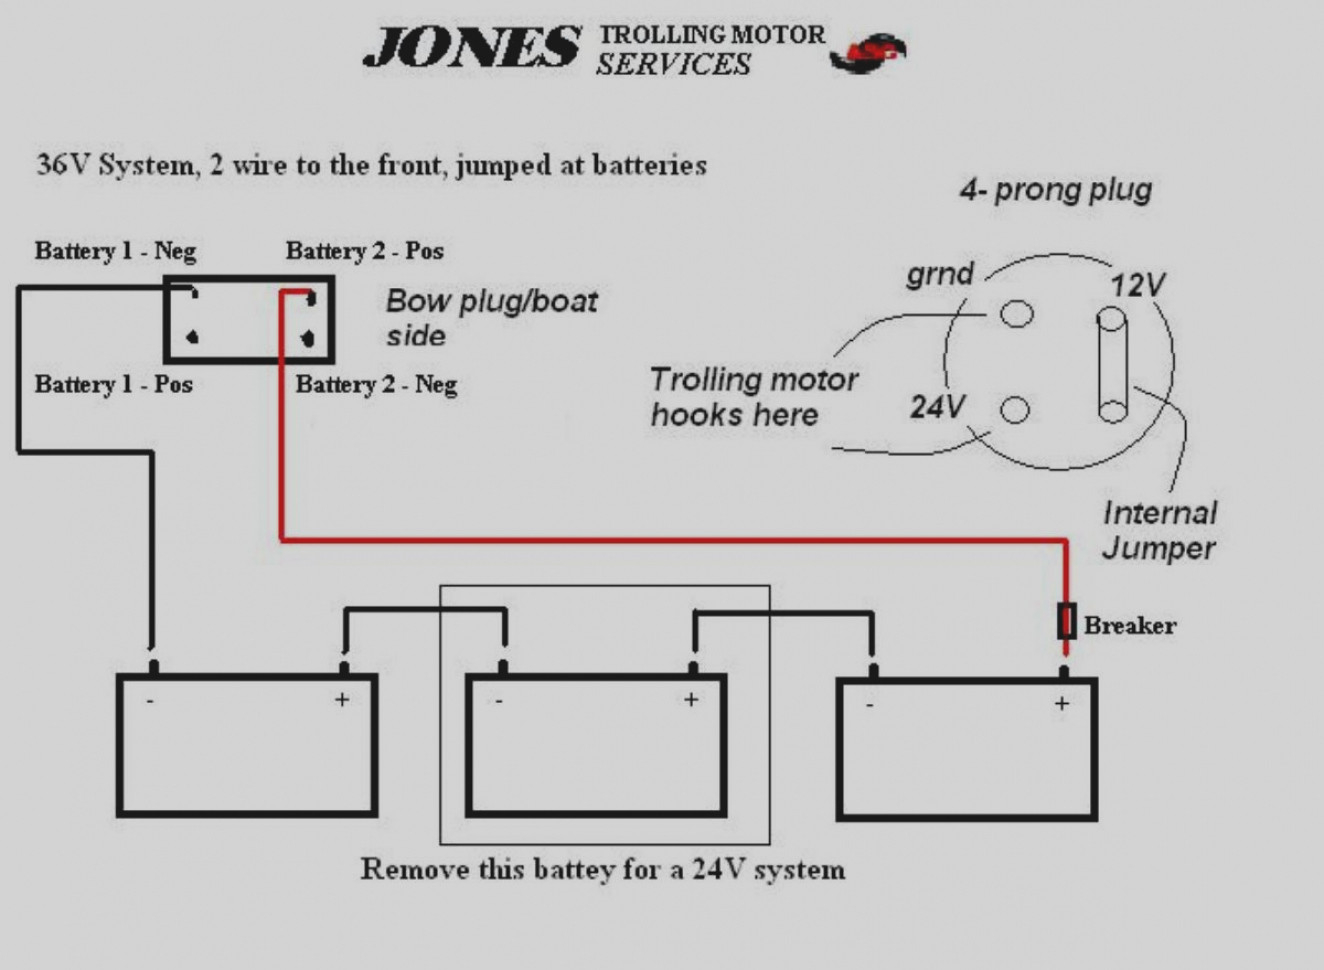 12v trolling motor wiring diagram Collection-Wonderful 24 Volt Trolling Motor Battery Wiring Diagram 3 Prong Wire Diagrams Schematics 5-a